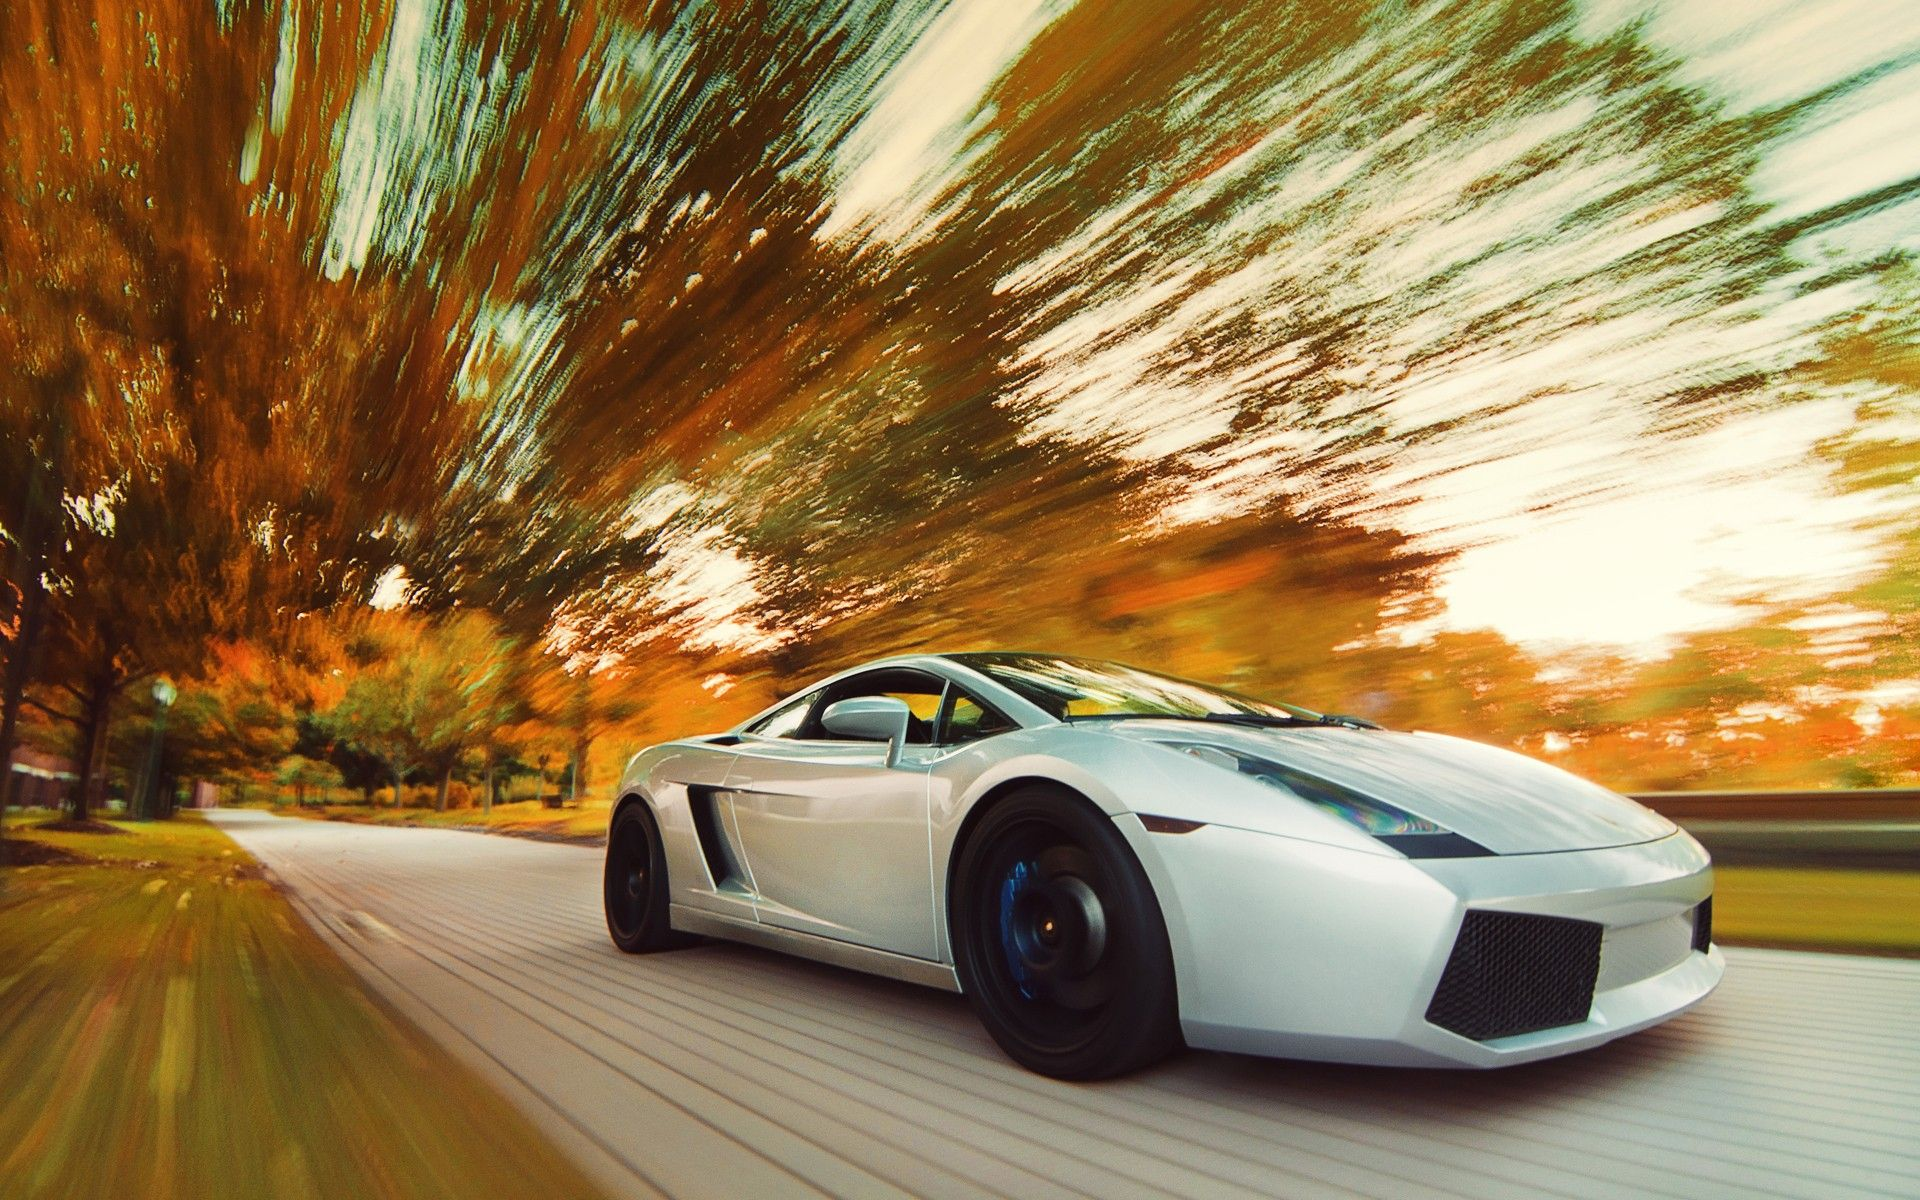 Lamborghini Gallardo Road #Hd #Cars